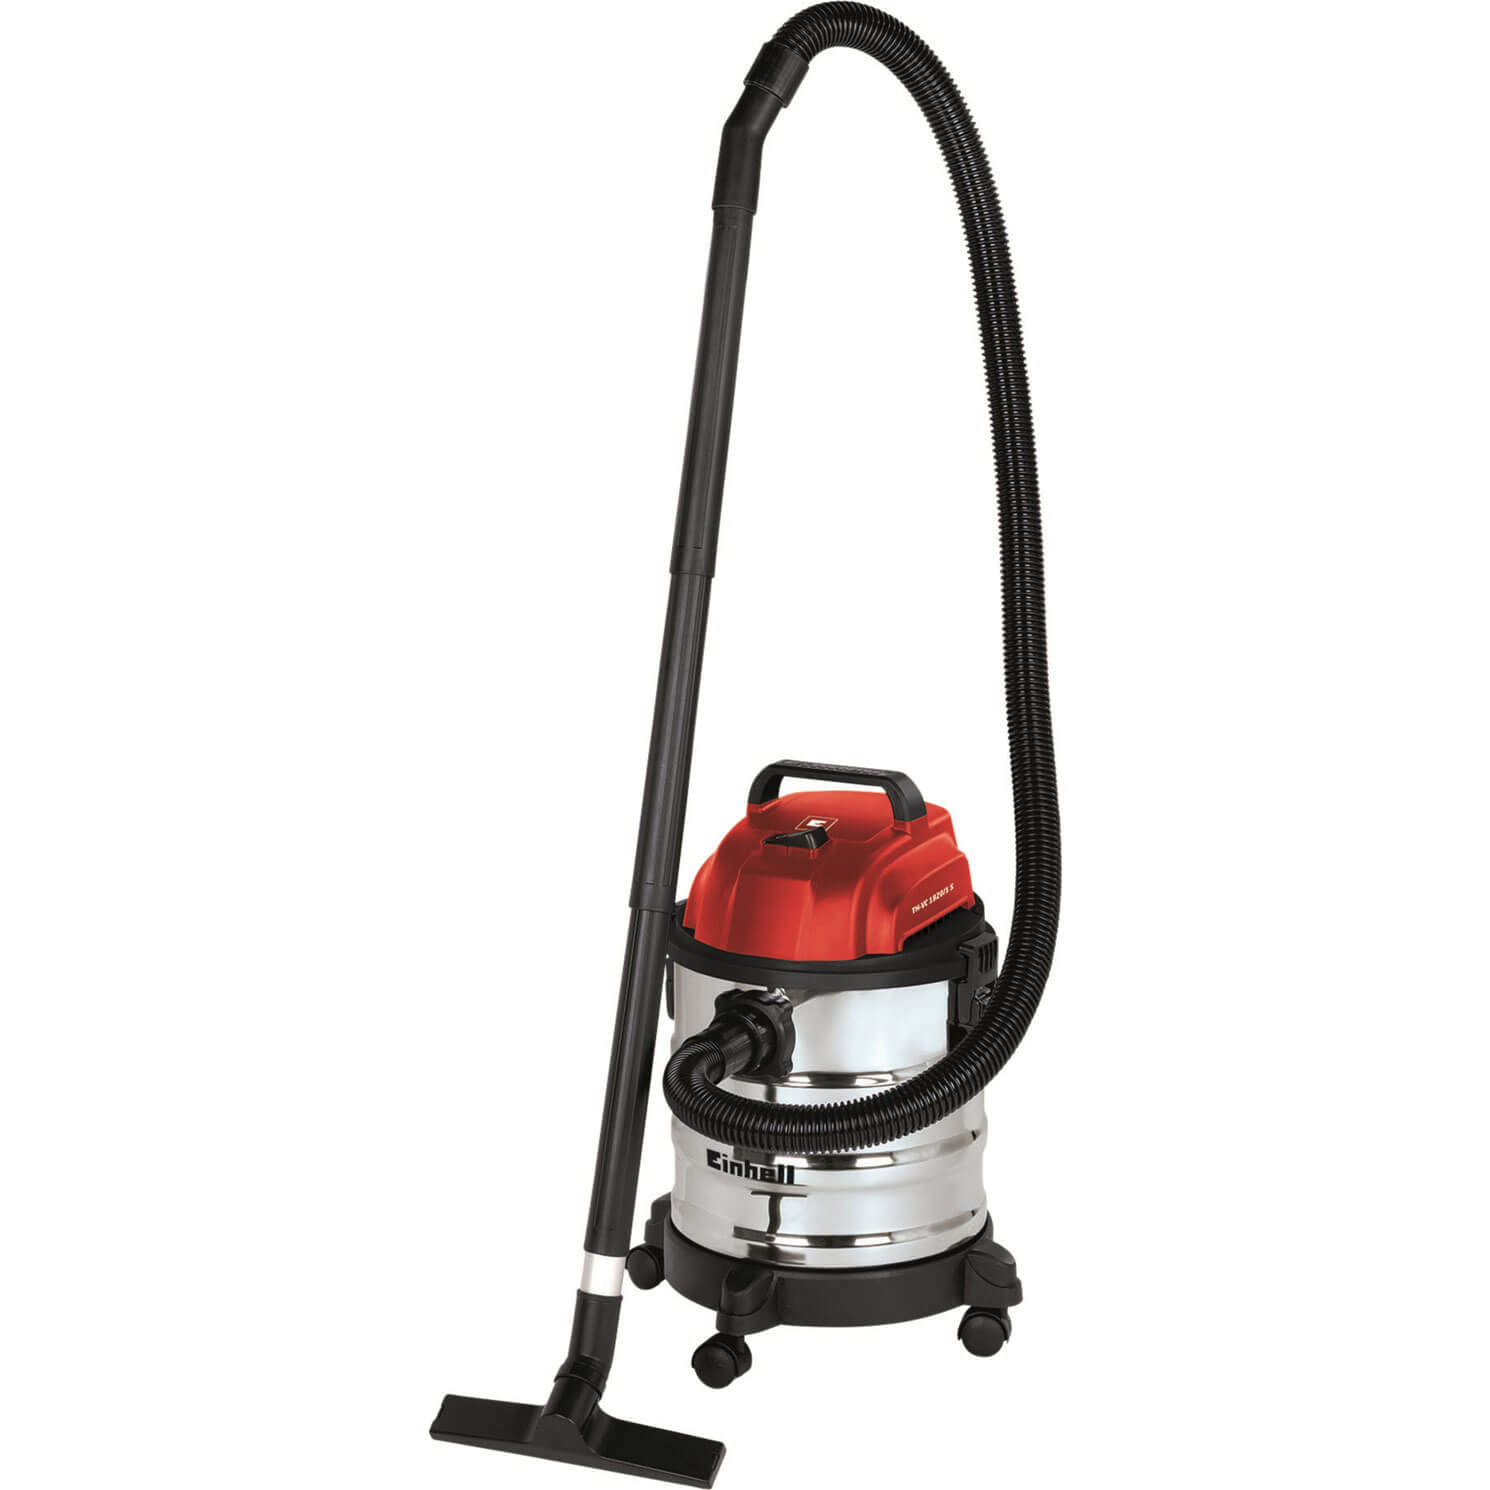 Image of Einhell TH-VC1820S Wet & Dry Vacuum Cleaner 20L Tank 1250w 240v